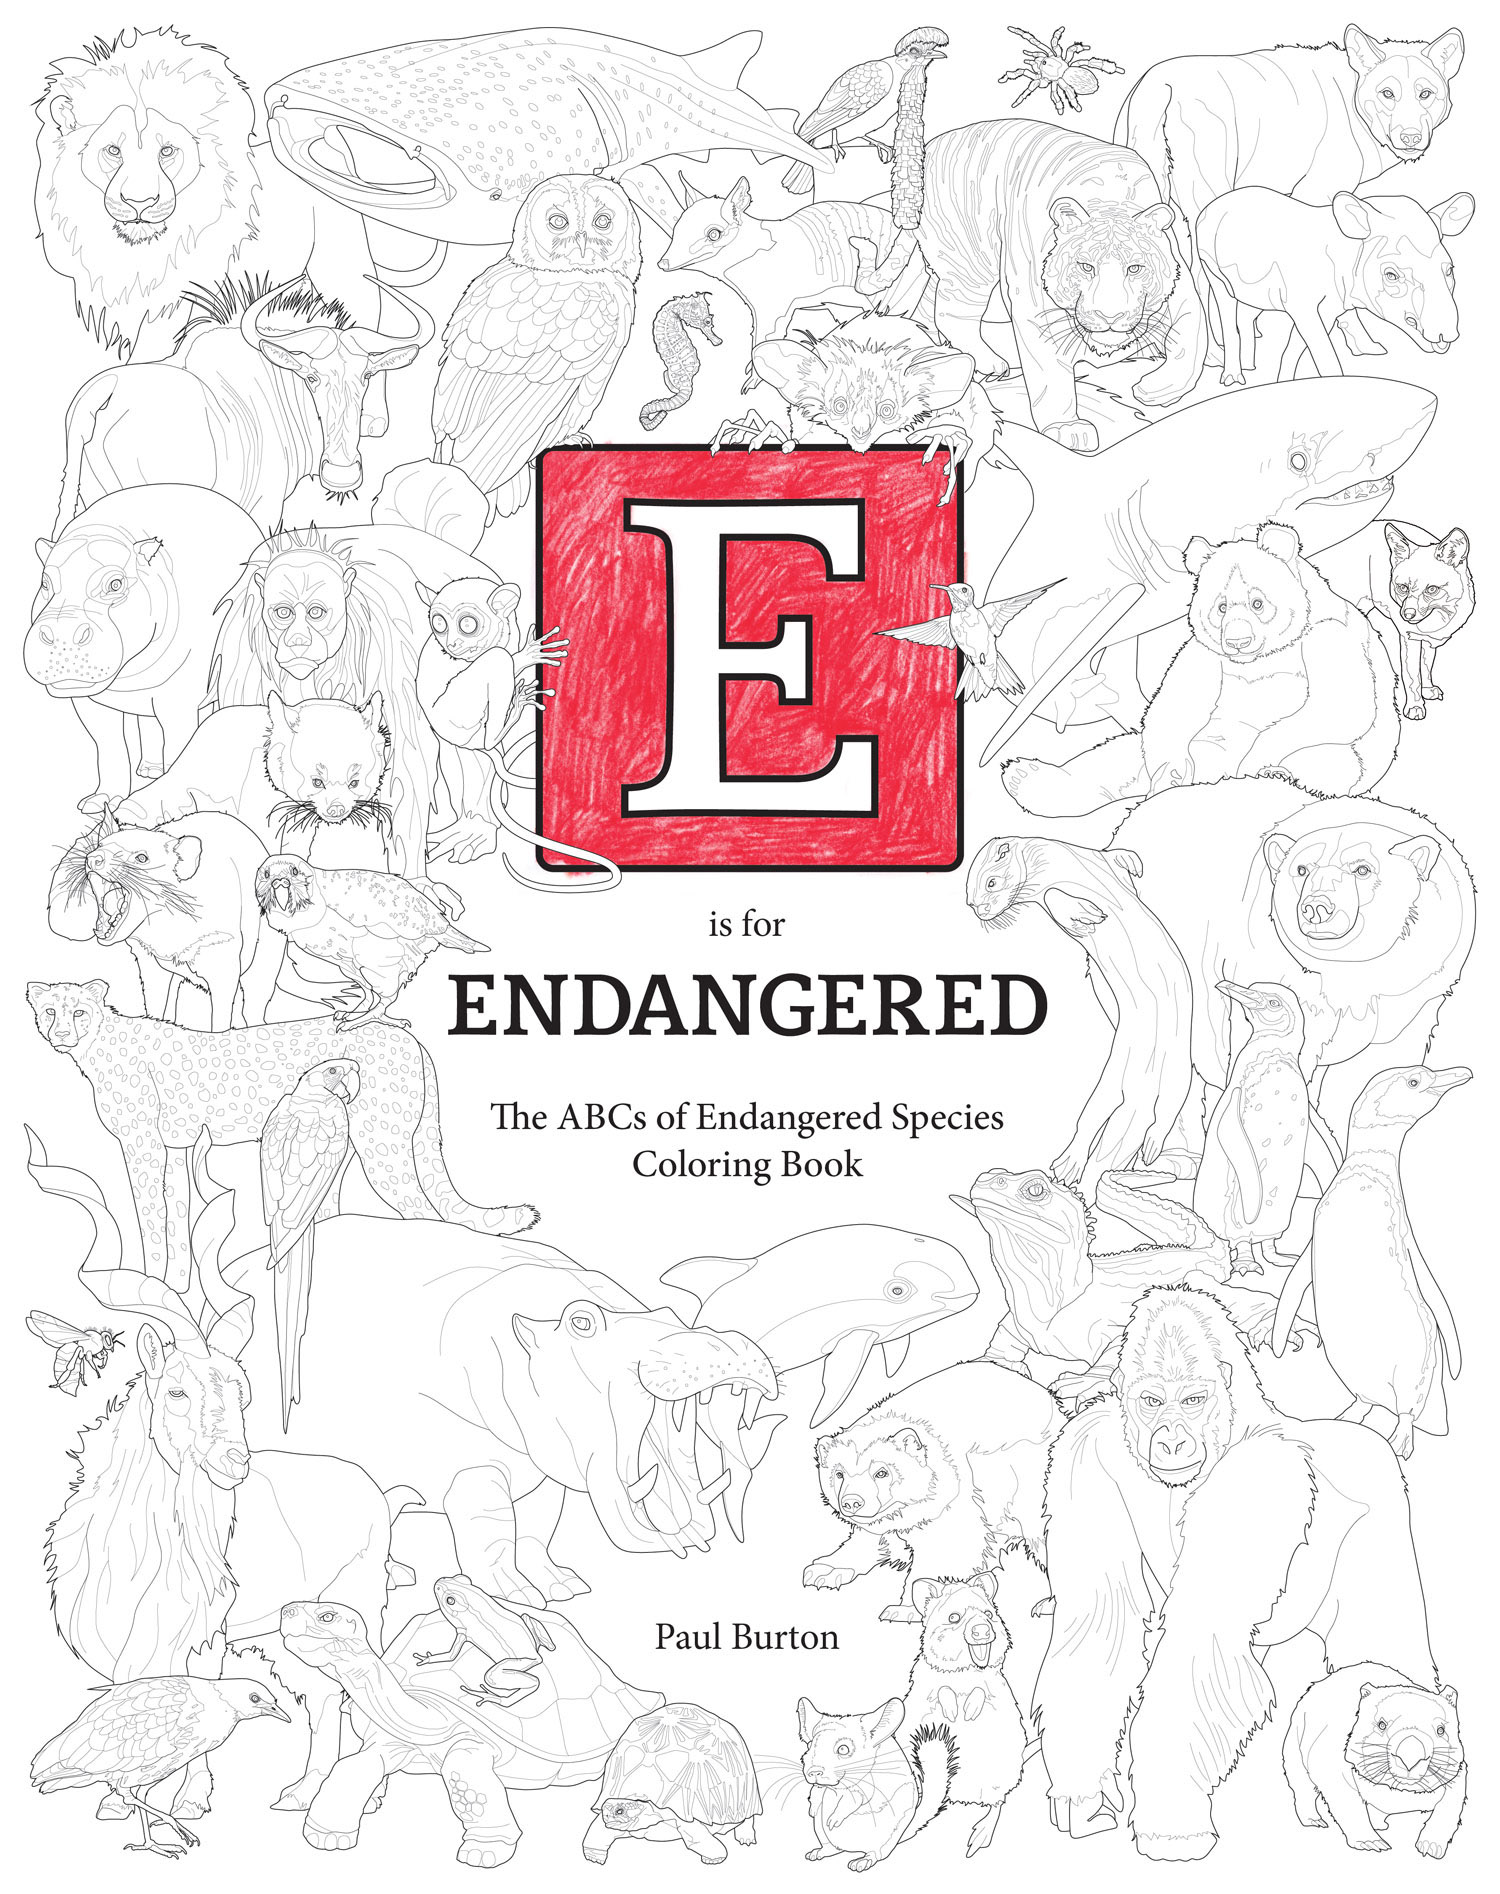 eisforendangered-cover-11.875x15.jpg